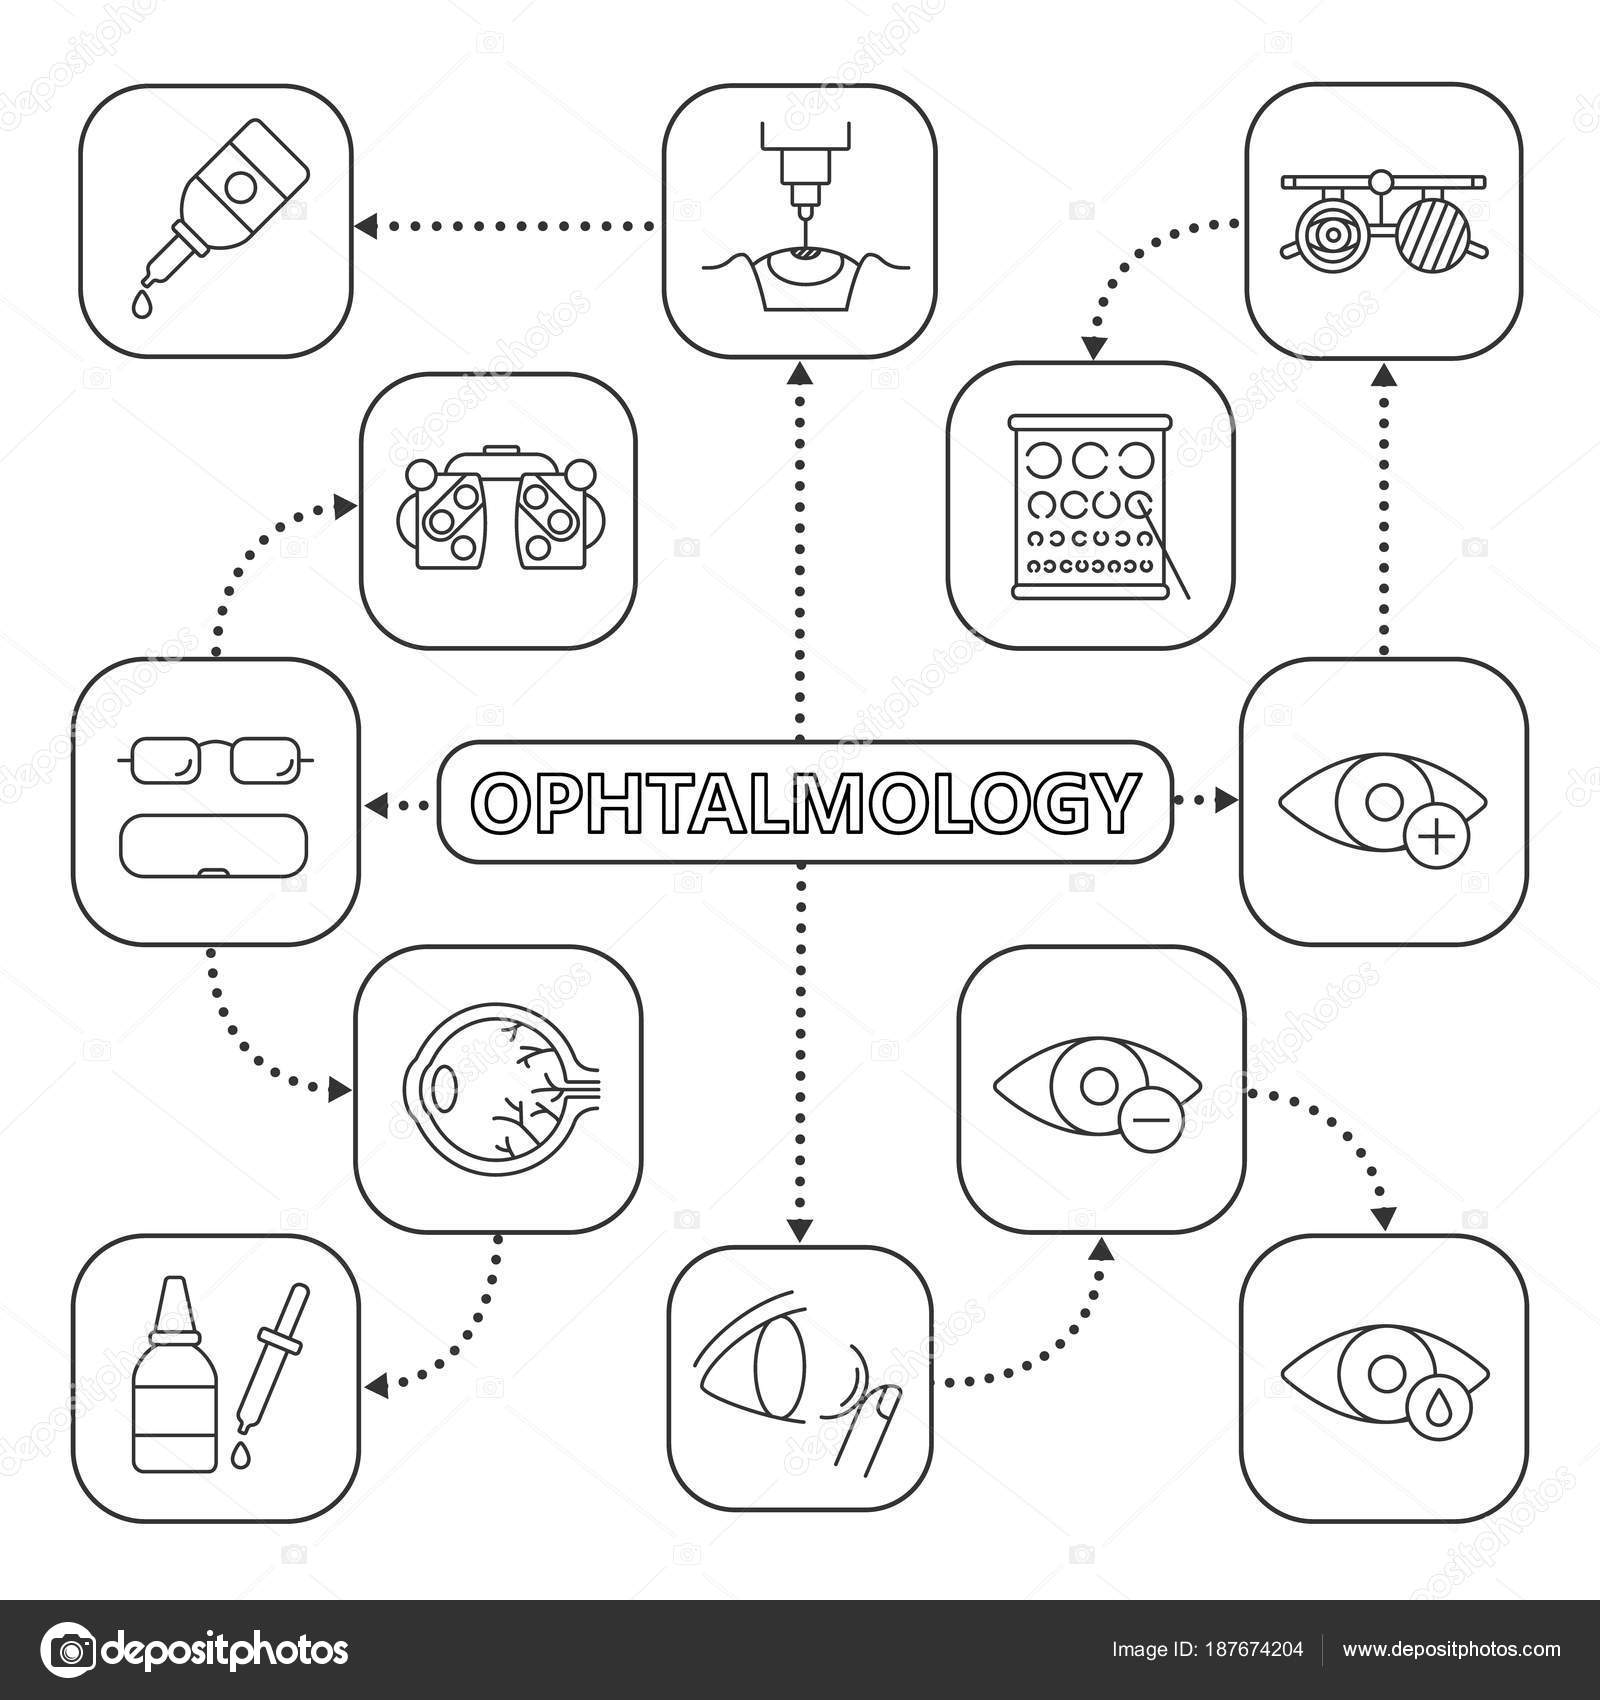 Ophthalmology Mind Map Linear Icons Optometry Concept Scheme Myopia ...